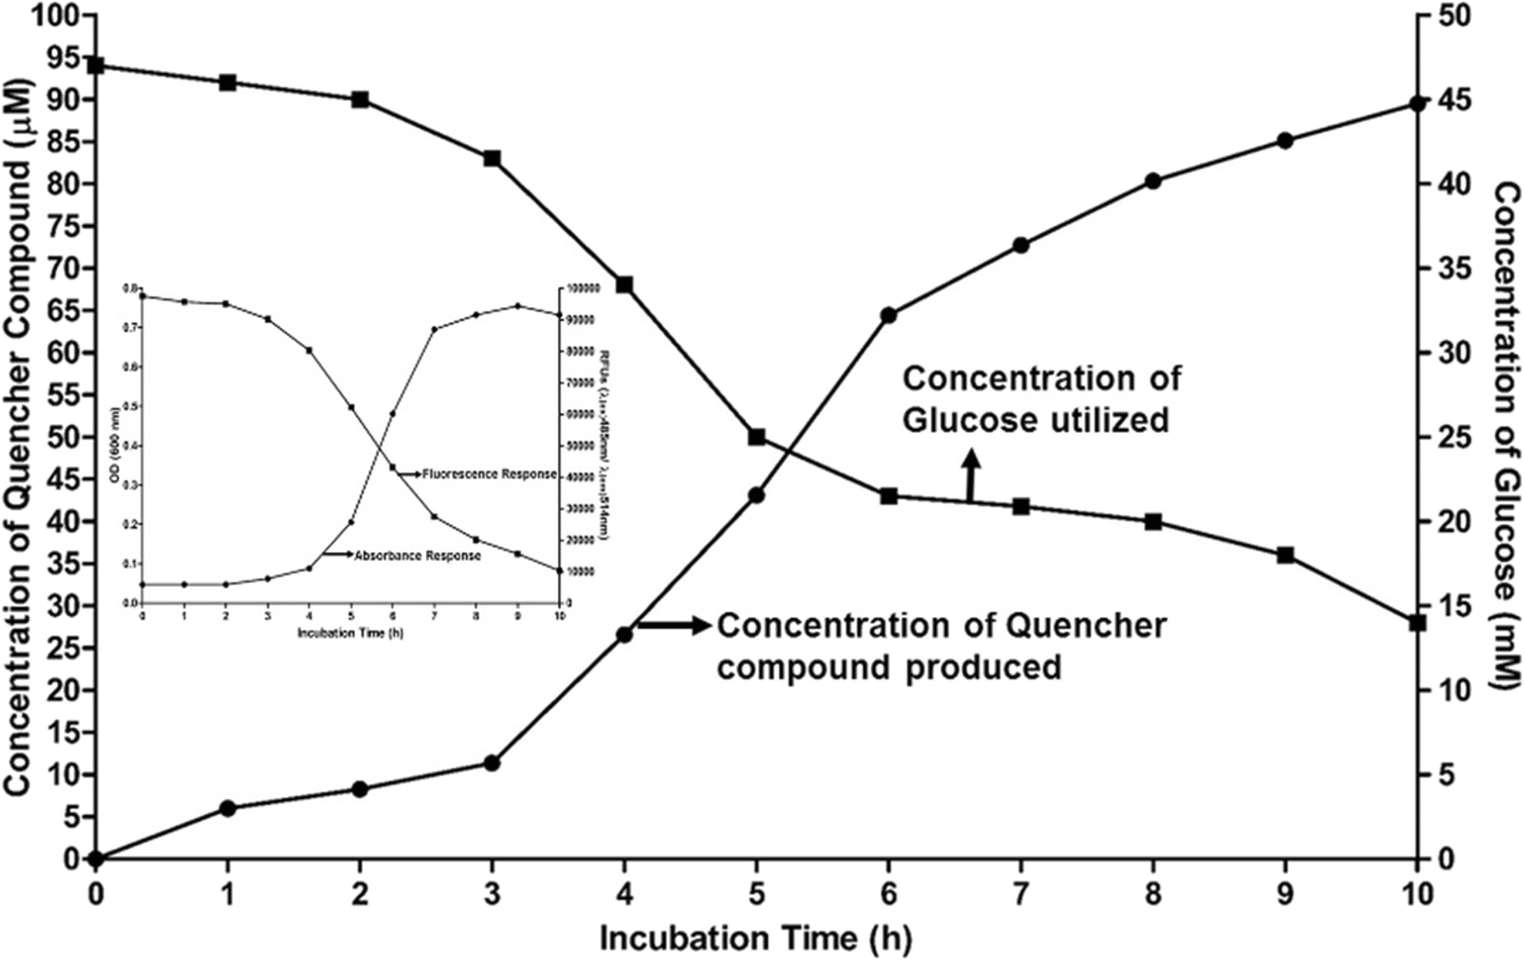 13-Docosenamide release by bacteria in response to glucose